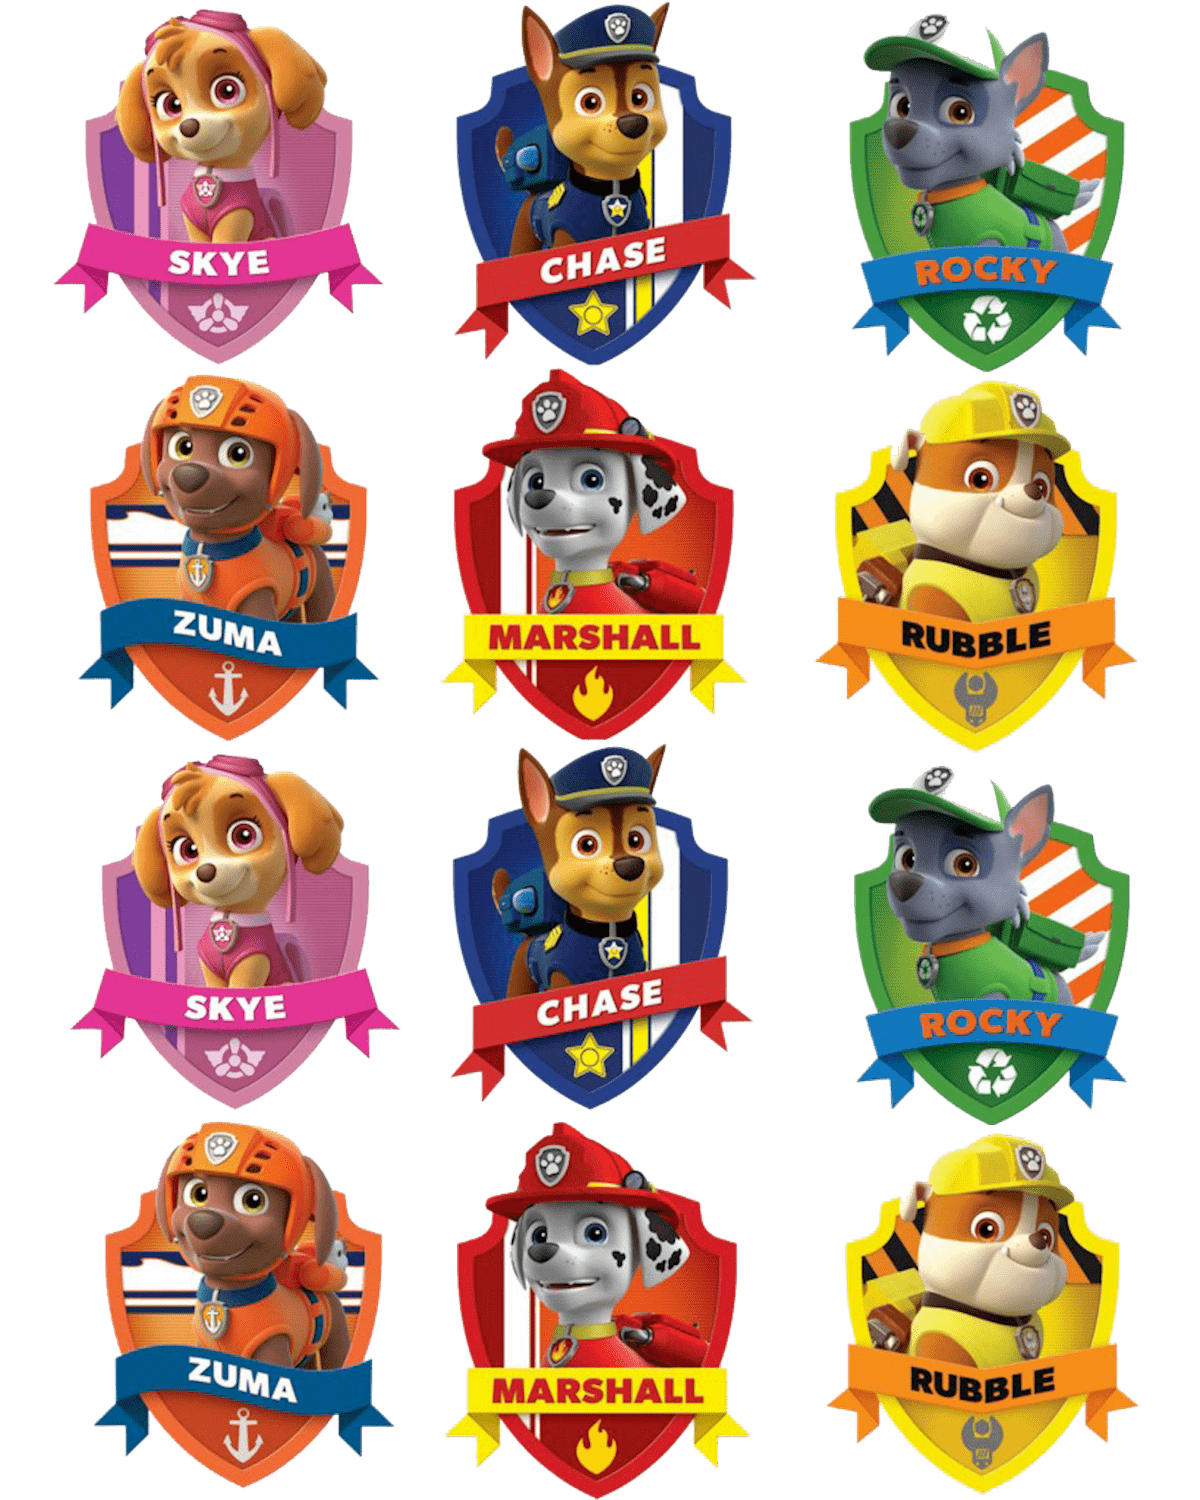 Paw patrol badge clipart royalty free Badges Paw Patrol Clipart Png royalty free